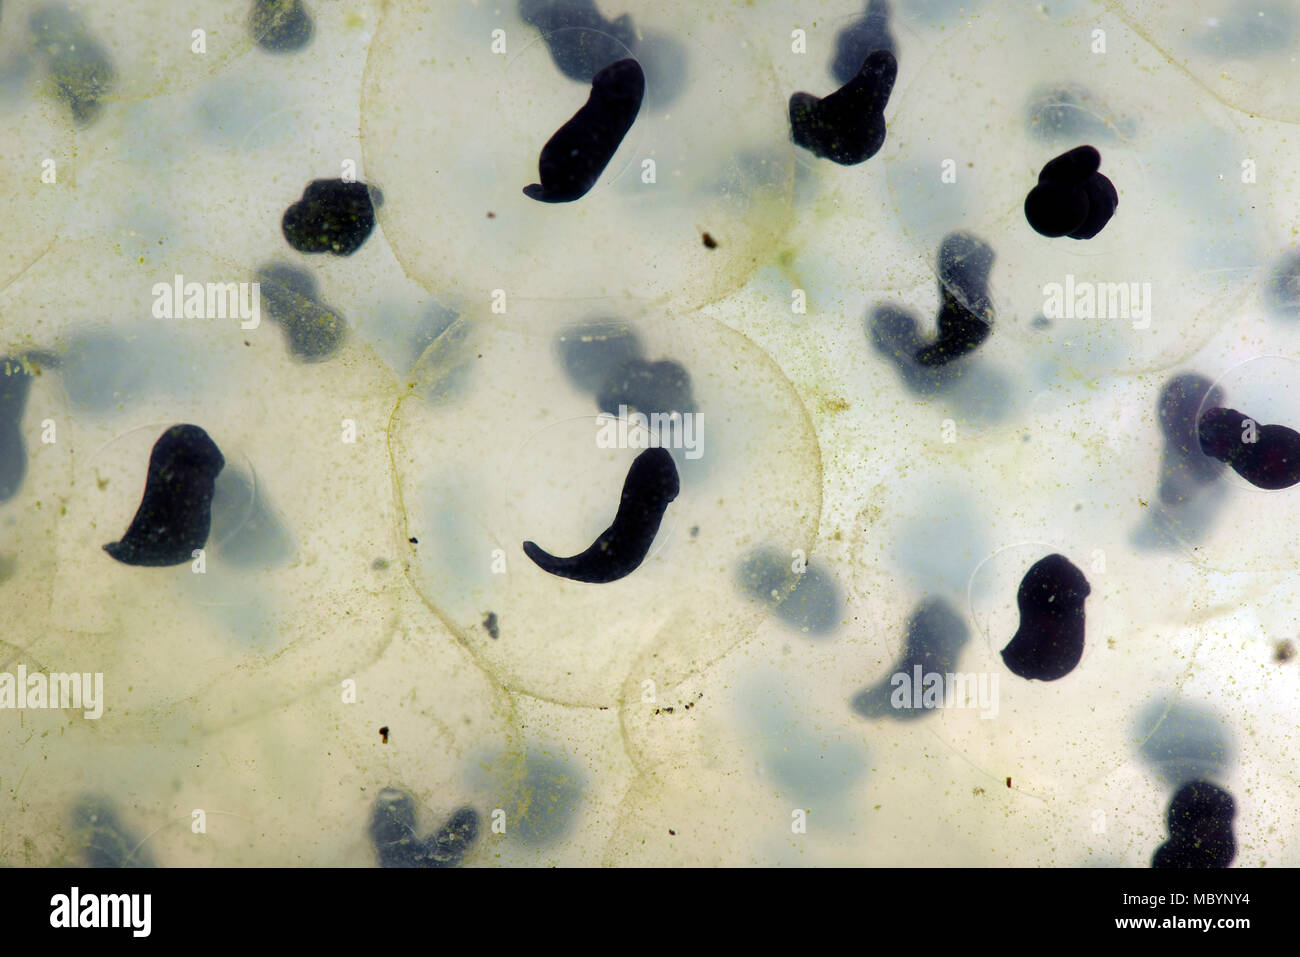 European common frog, Rana temporaria, frogspawn with developing tadpoles shaped like a 'comma', April - Stock Image